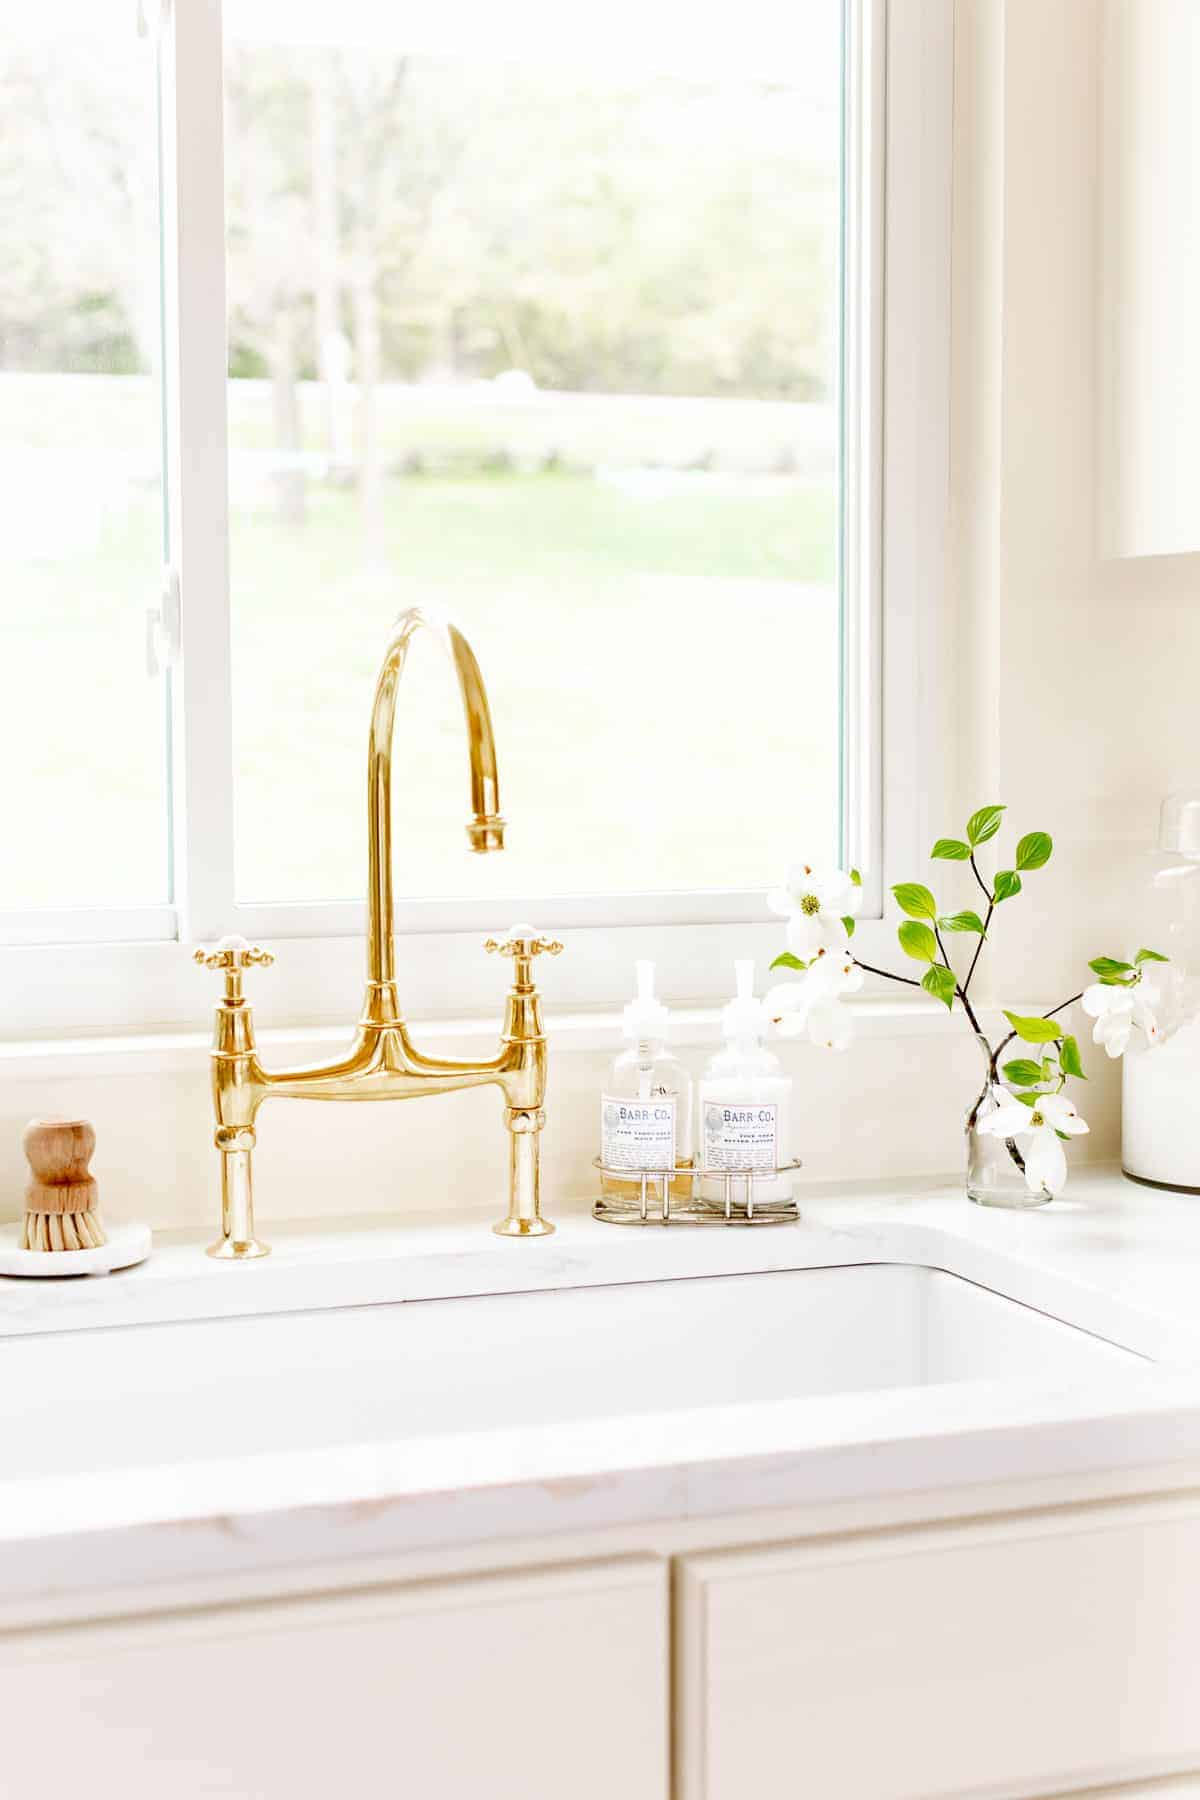 unlacquered brass faucet in kitchen